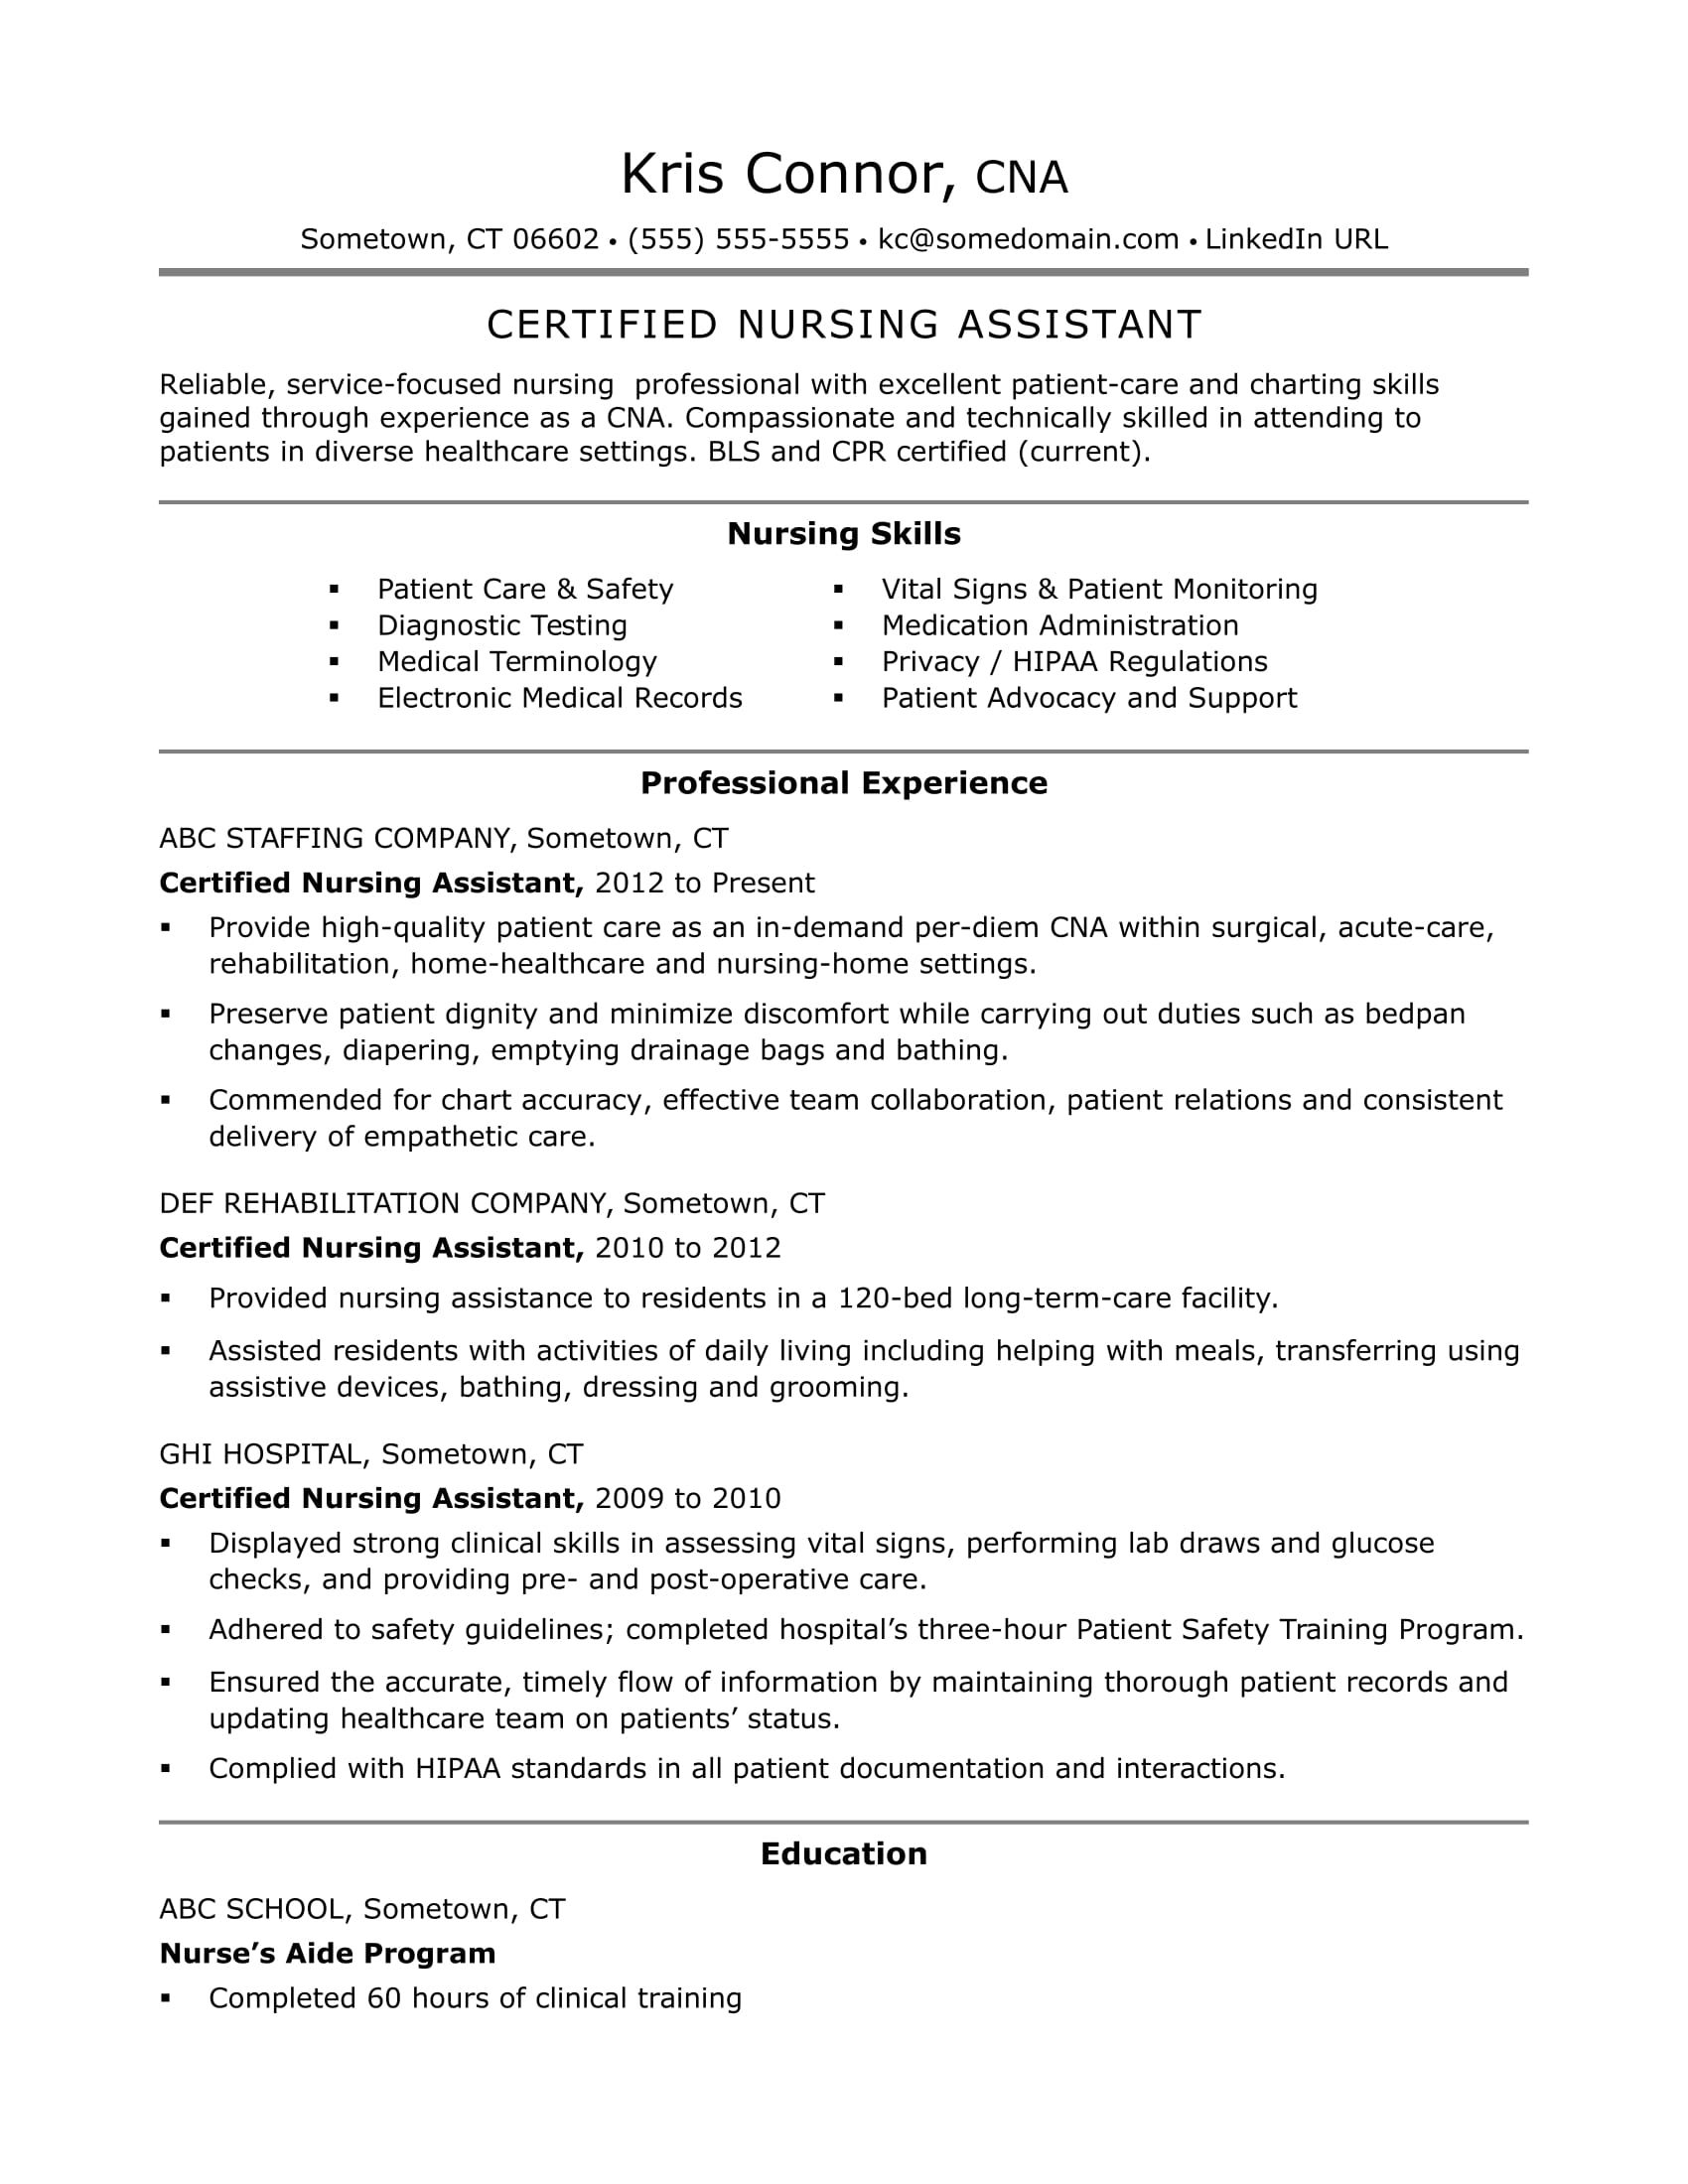 nursing skills on resumes